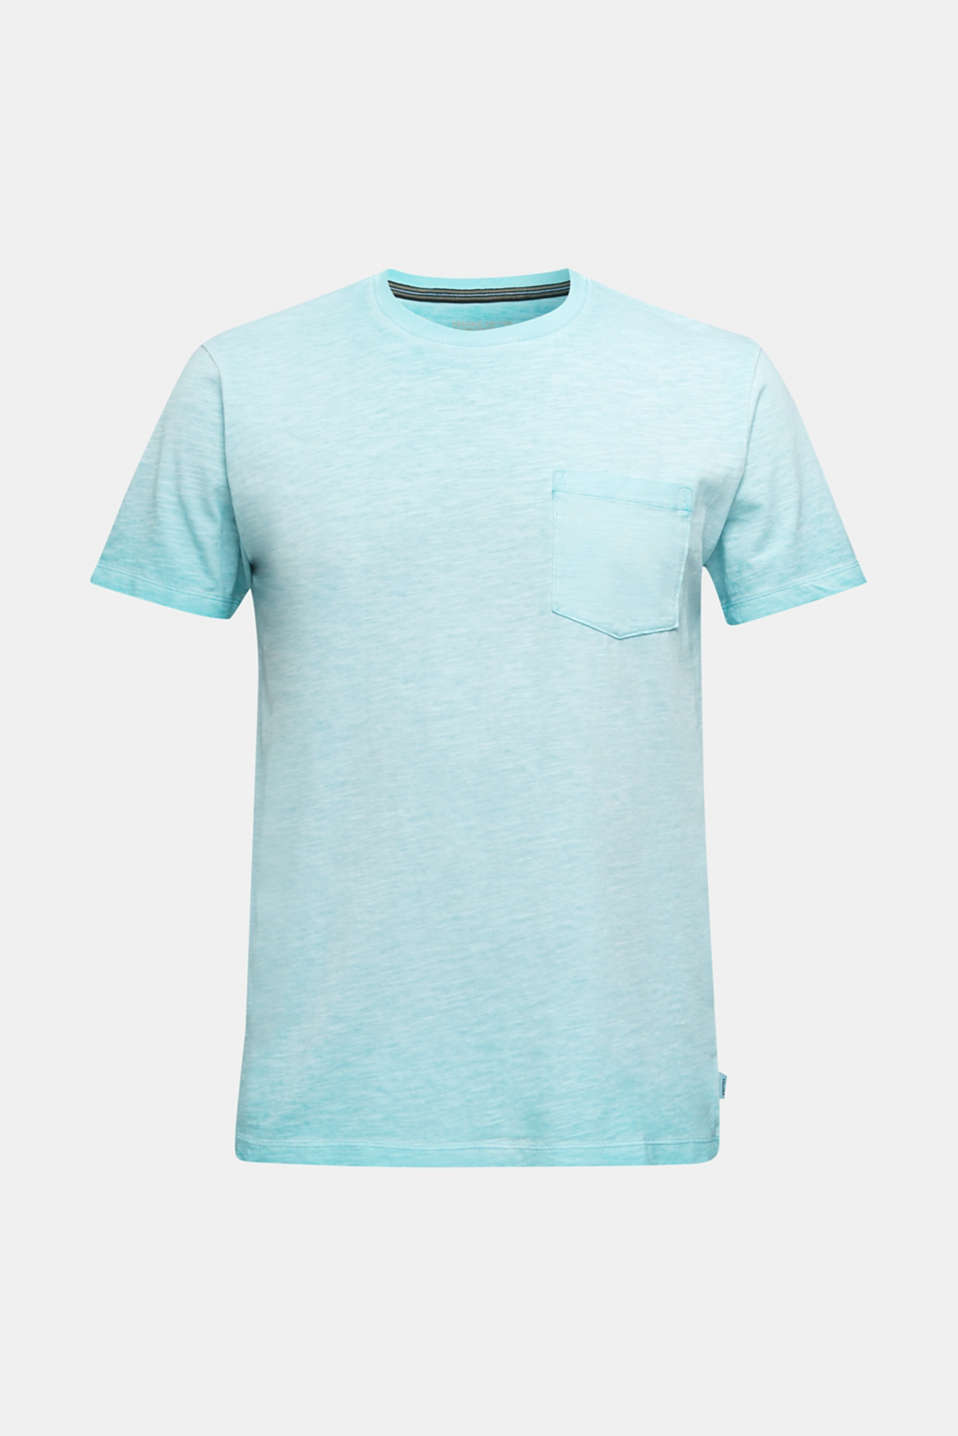 Jersey top made of 100% organic cotton, LIGHT BLUE 2, detail image number 5